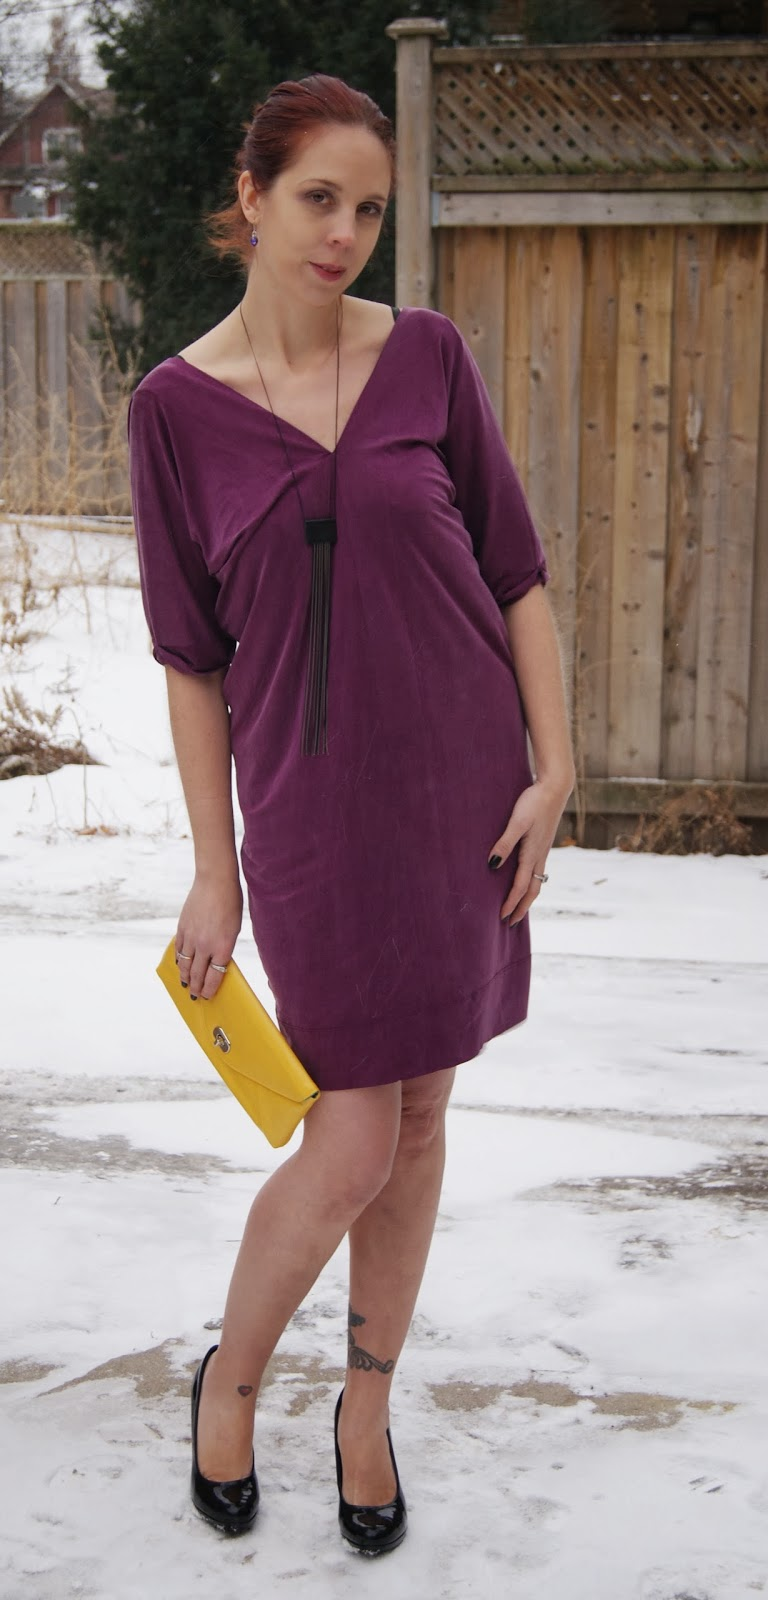 My Style: Purple Diesel Dress, Shop For Jayu Necklace, Jessica Black Shoes, Vintage Yellow Clutch, Fashion, Melanie.Ps blogger, The  Scarf, Toronto